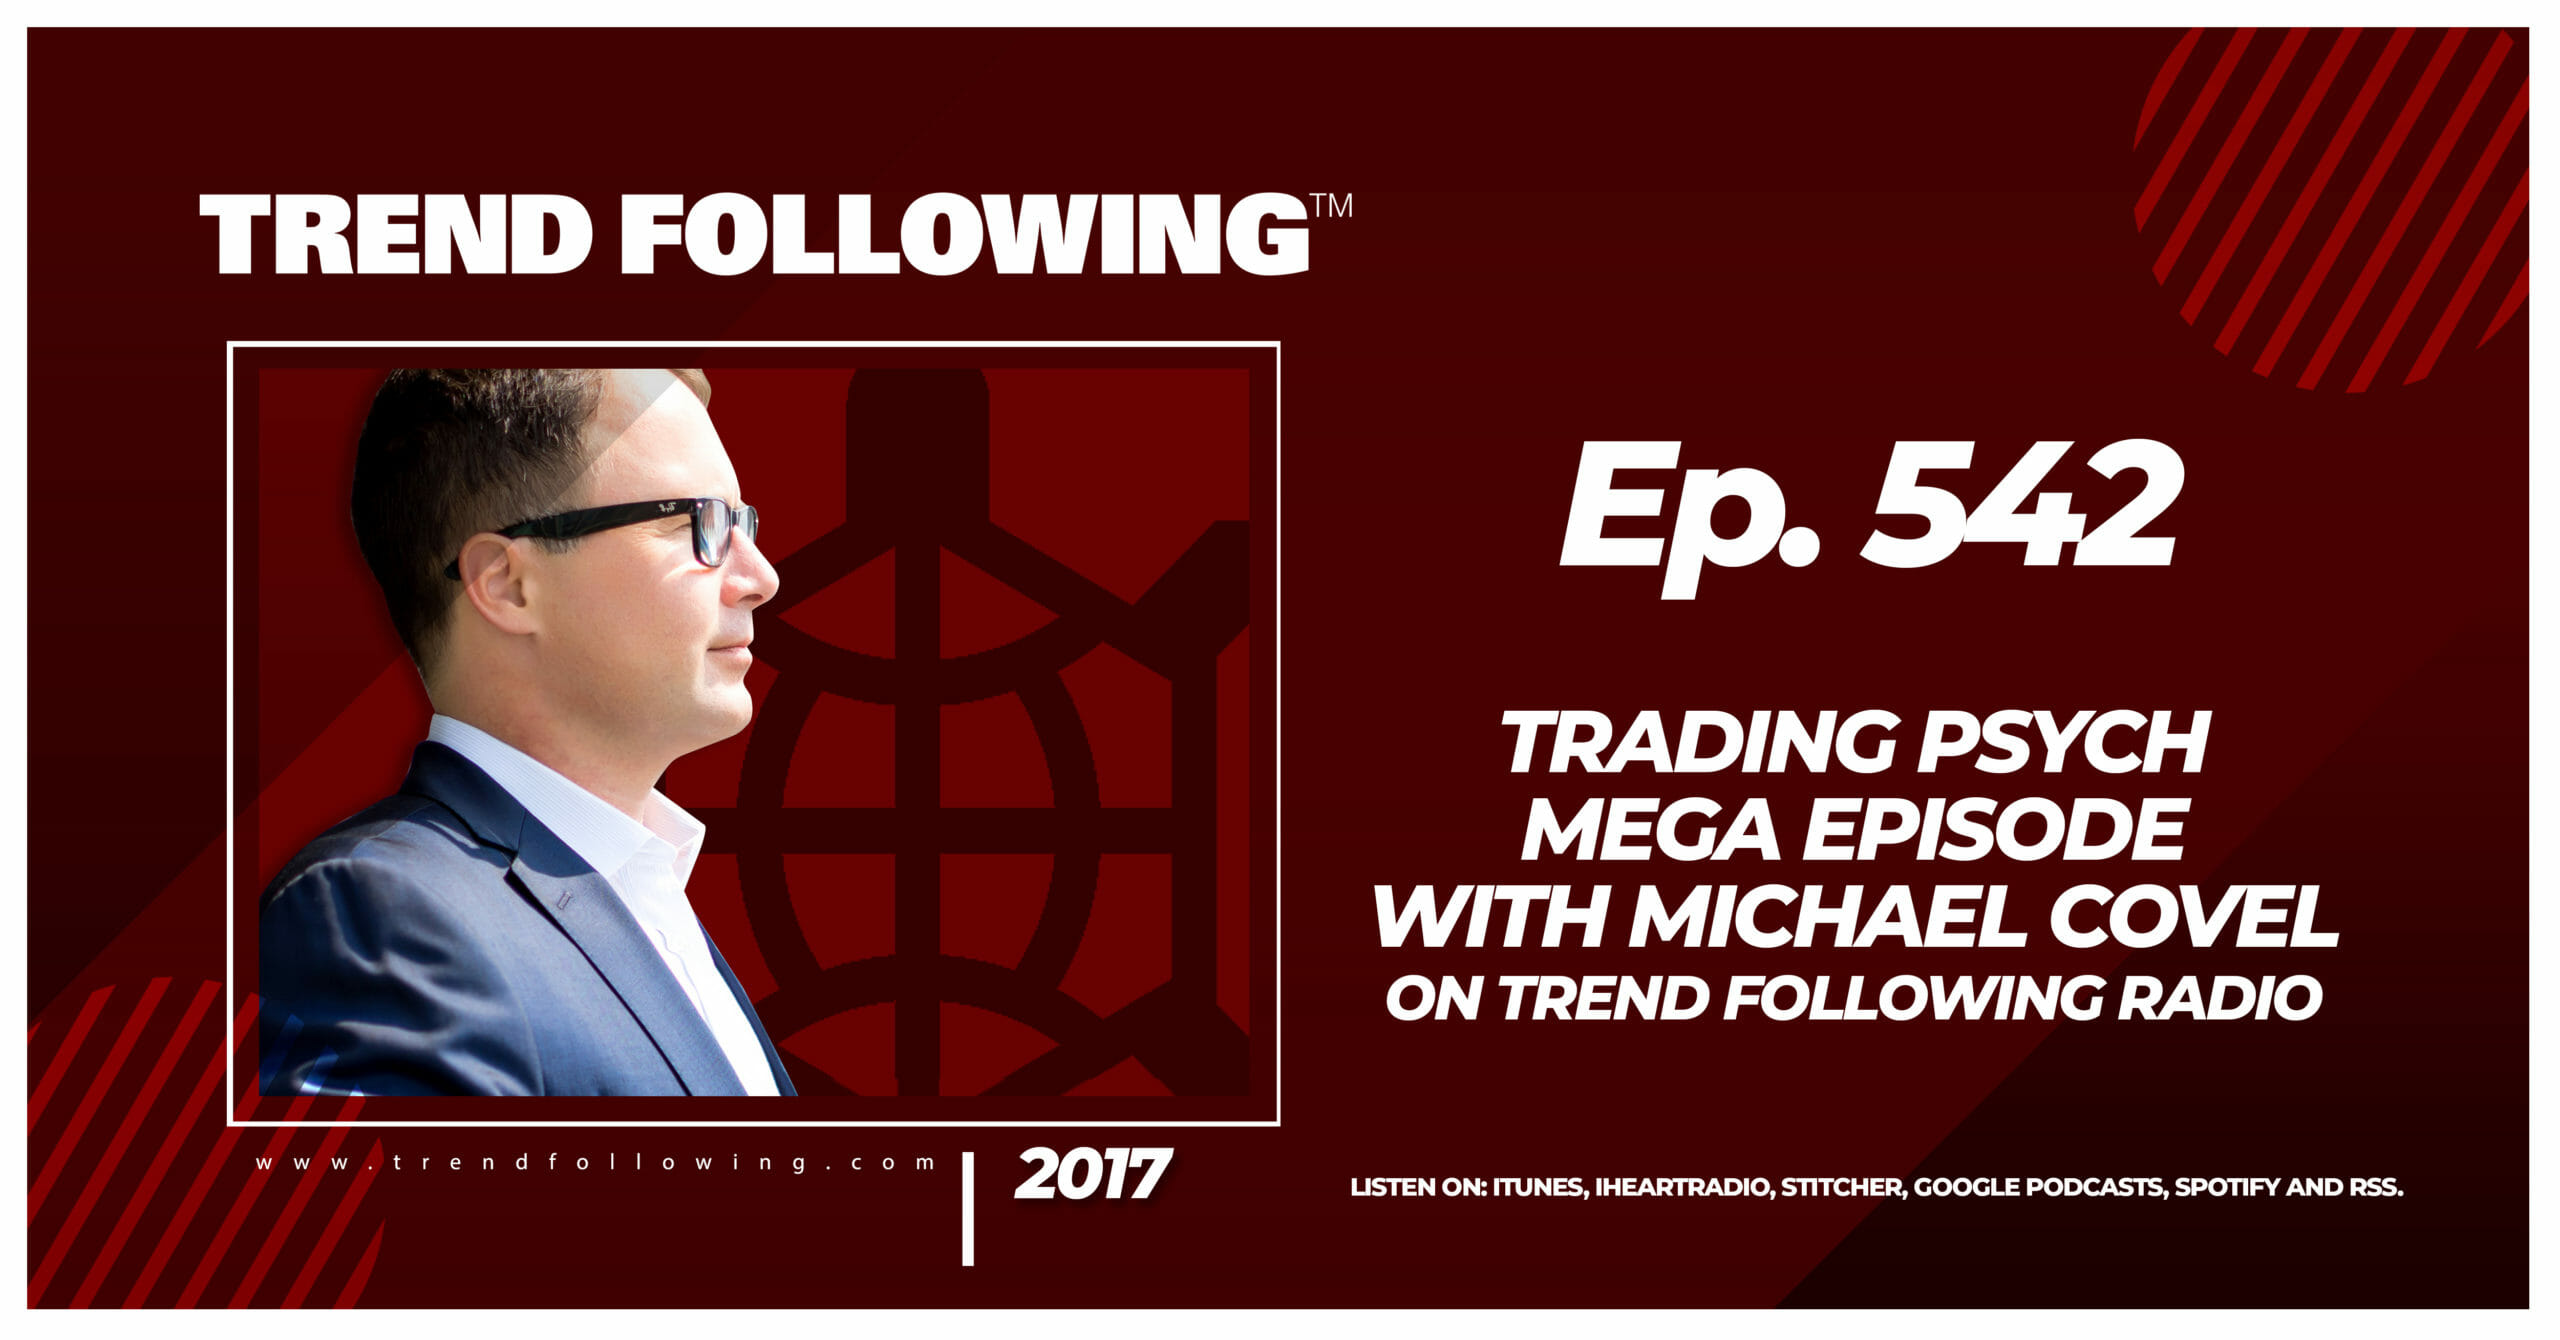 Trading Psych Mega Episode with Michael Covel on Trend Following Radio